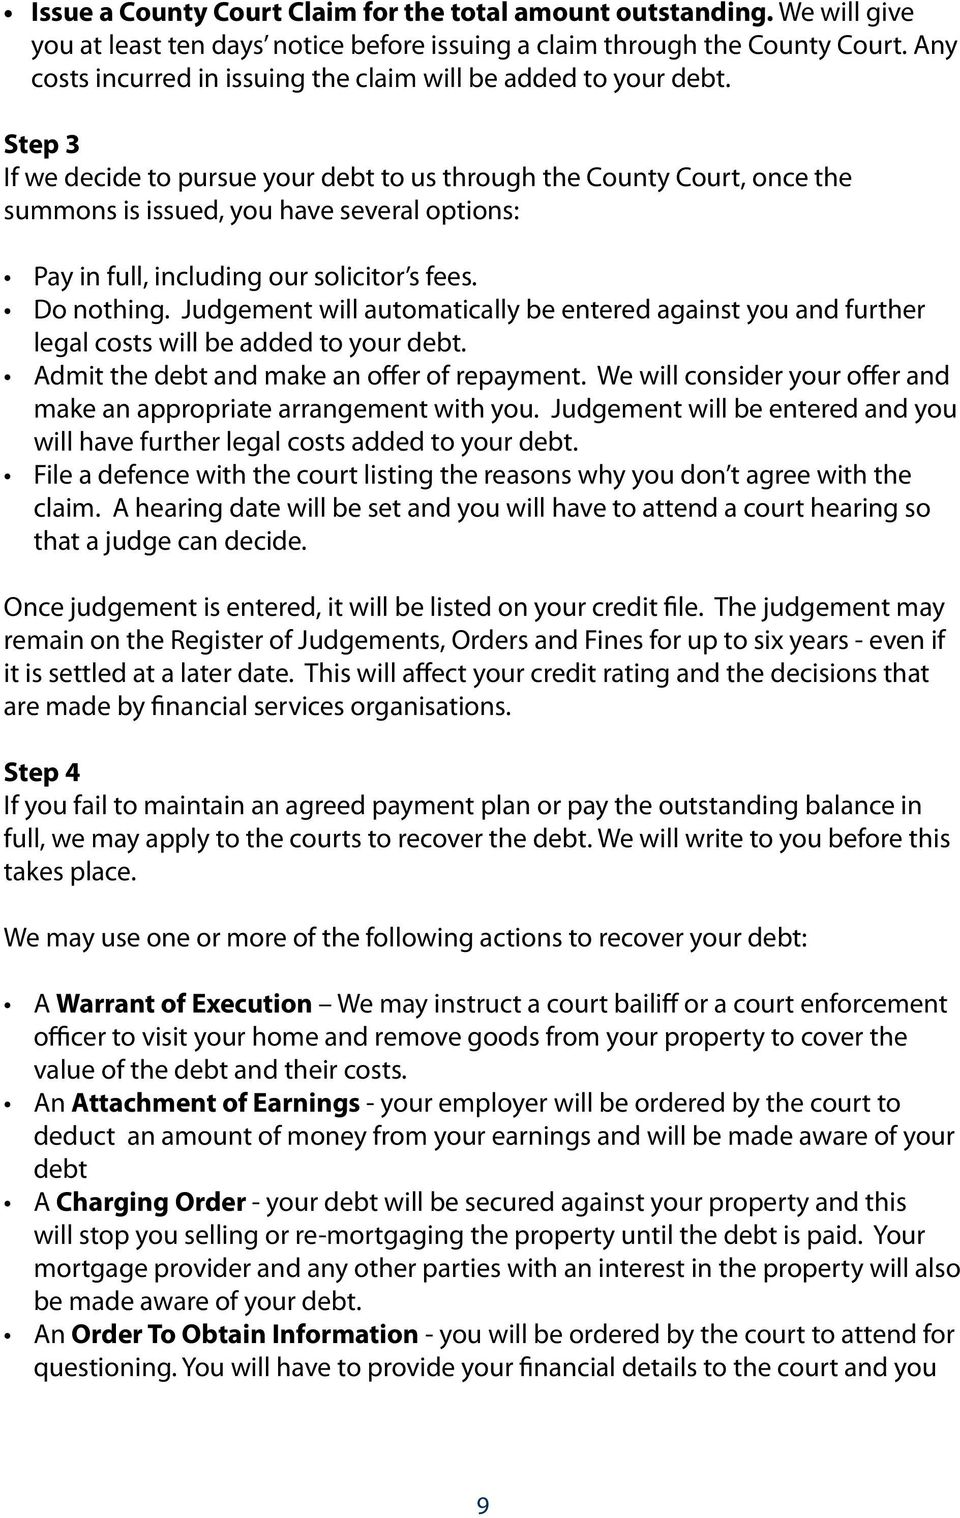 Step 3 If we decide to pursue your debt to us through the County Court, once the summons is issued, you have several options: Pay in full, including our solicitor s fees. Do nothing.